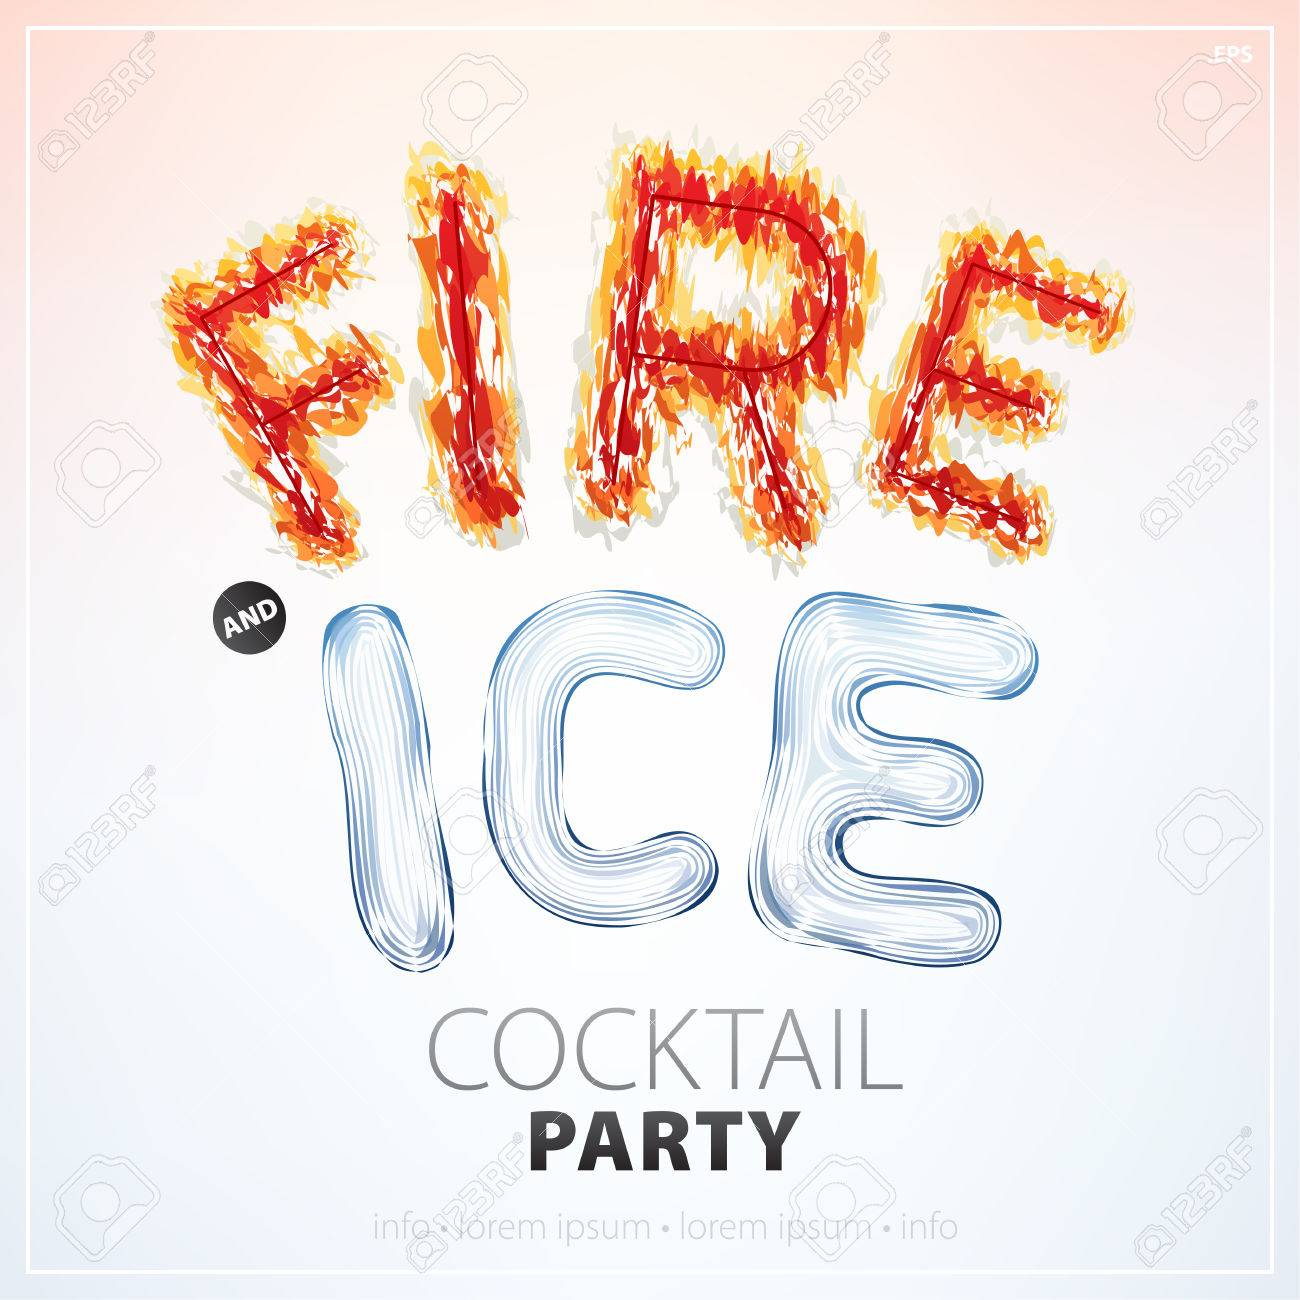 Fire And Ice Banner For A Cocktail Party Can Be Used On A Poster